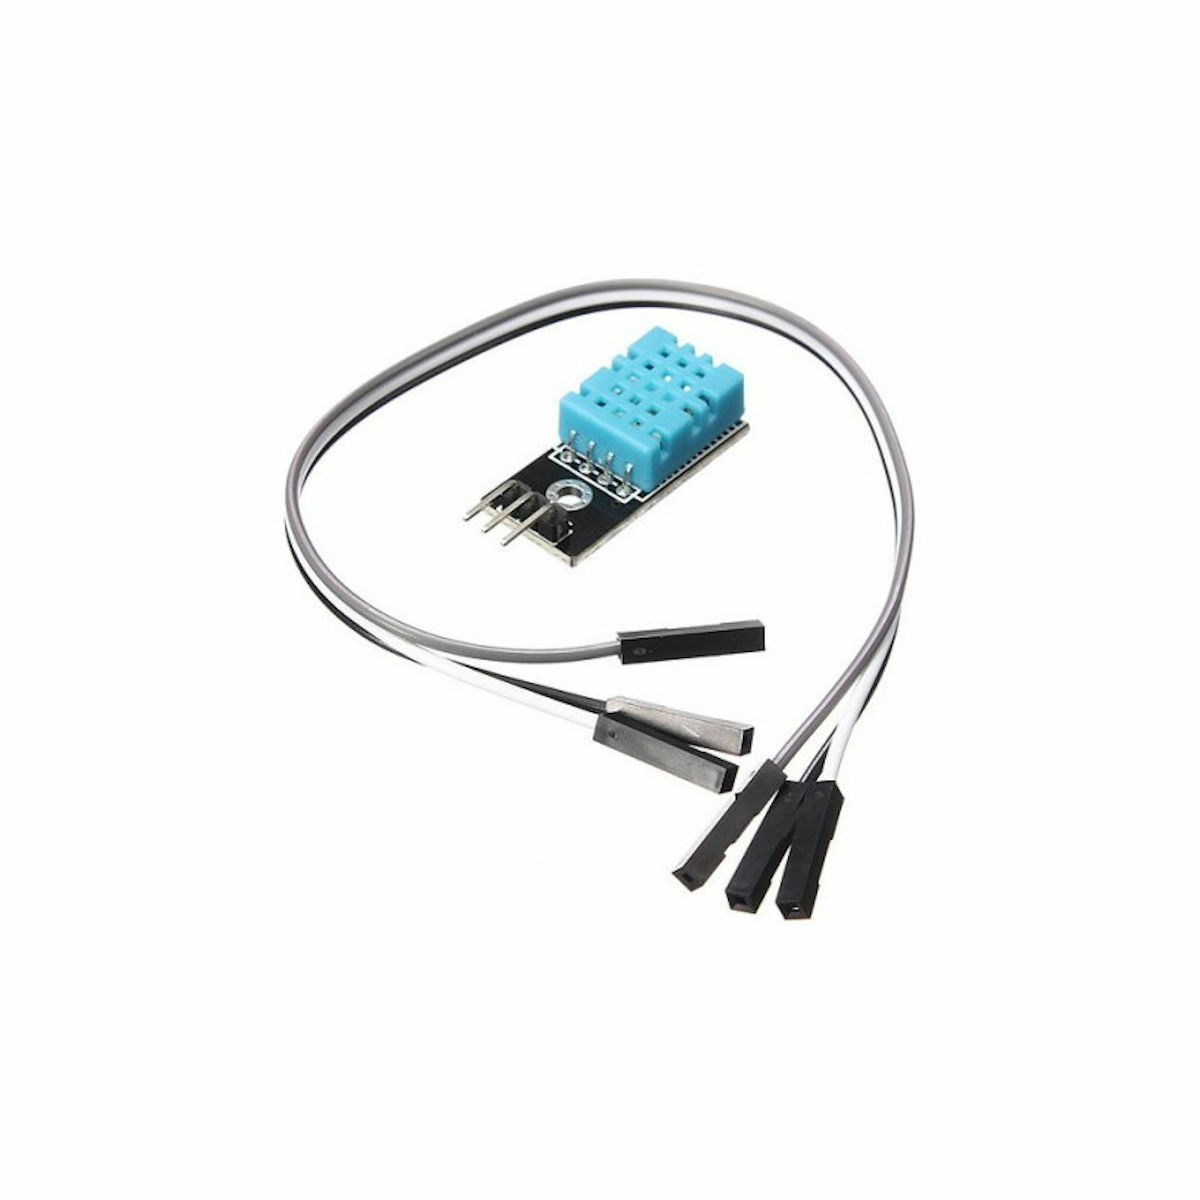 Dht11 Digital Module Humidity Temperature Sensor Free